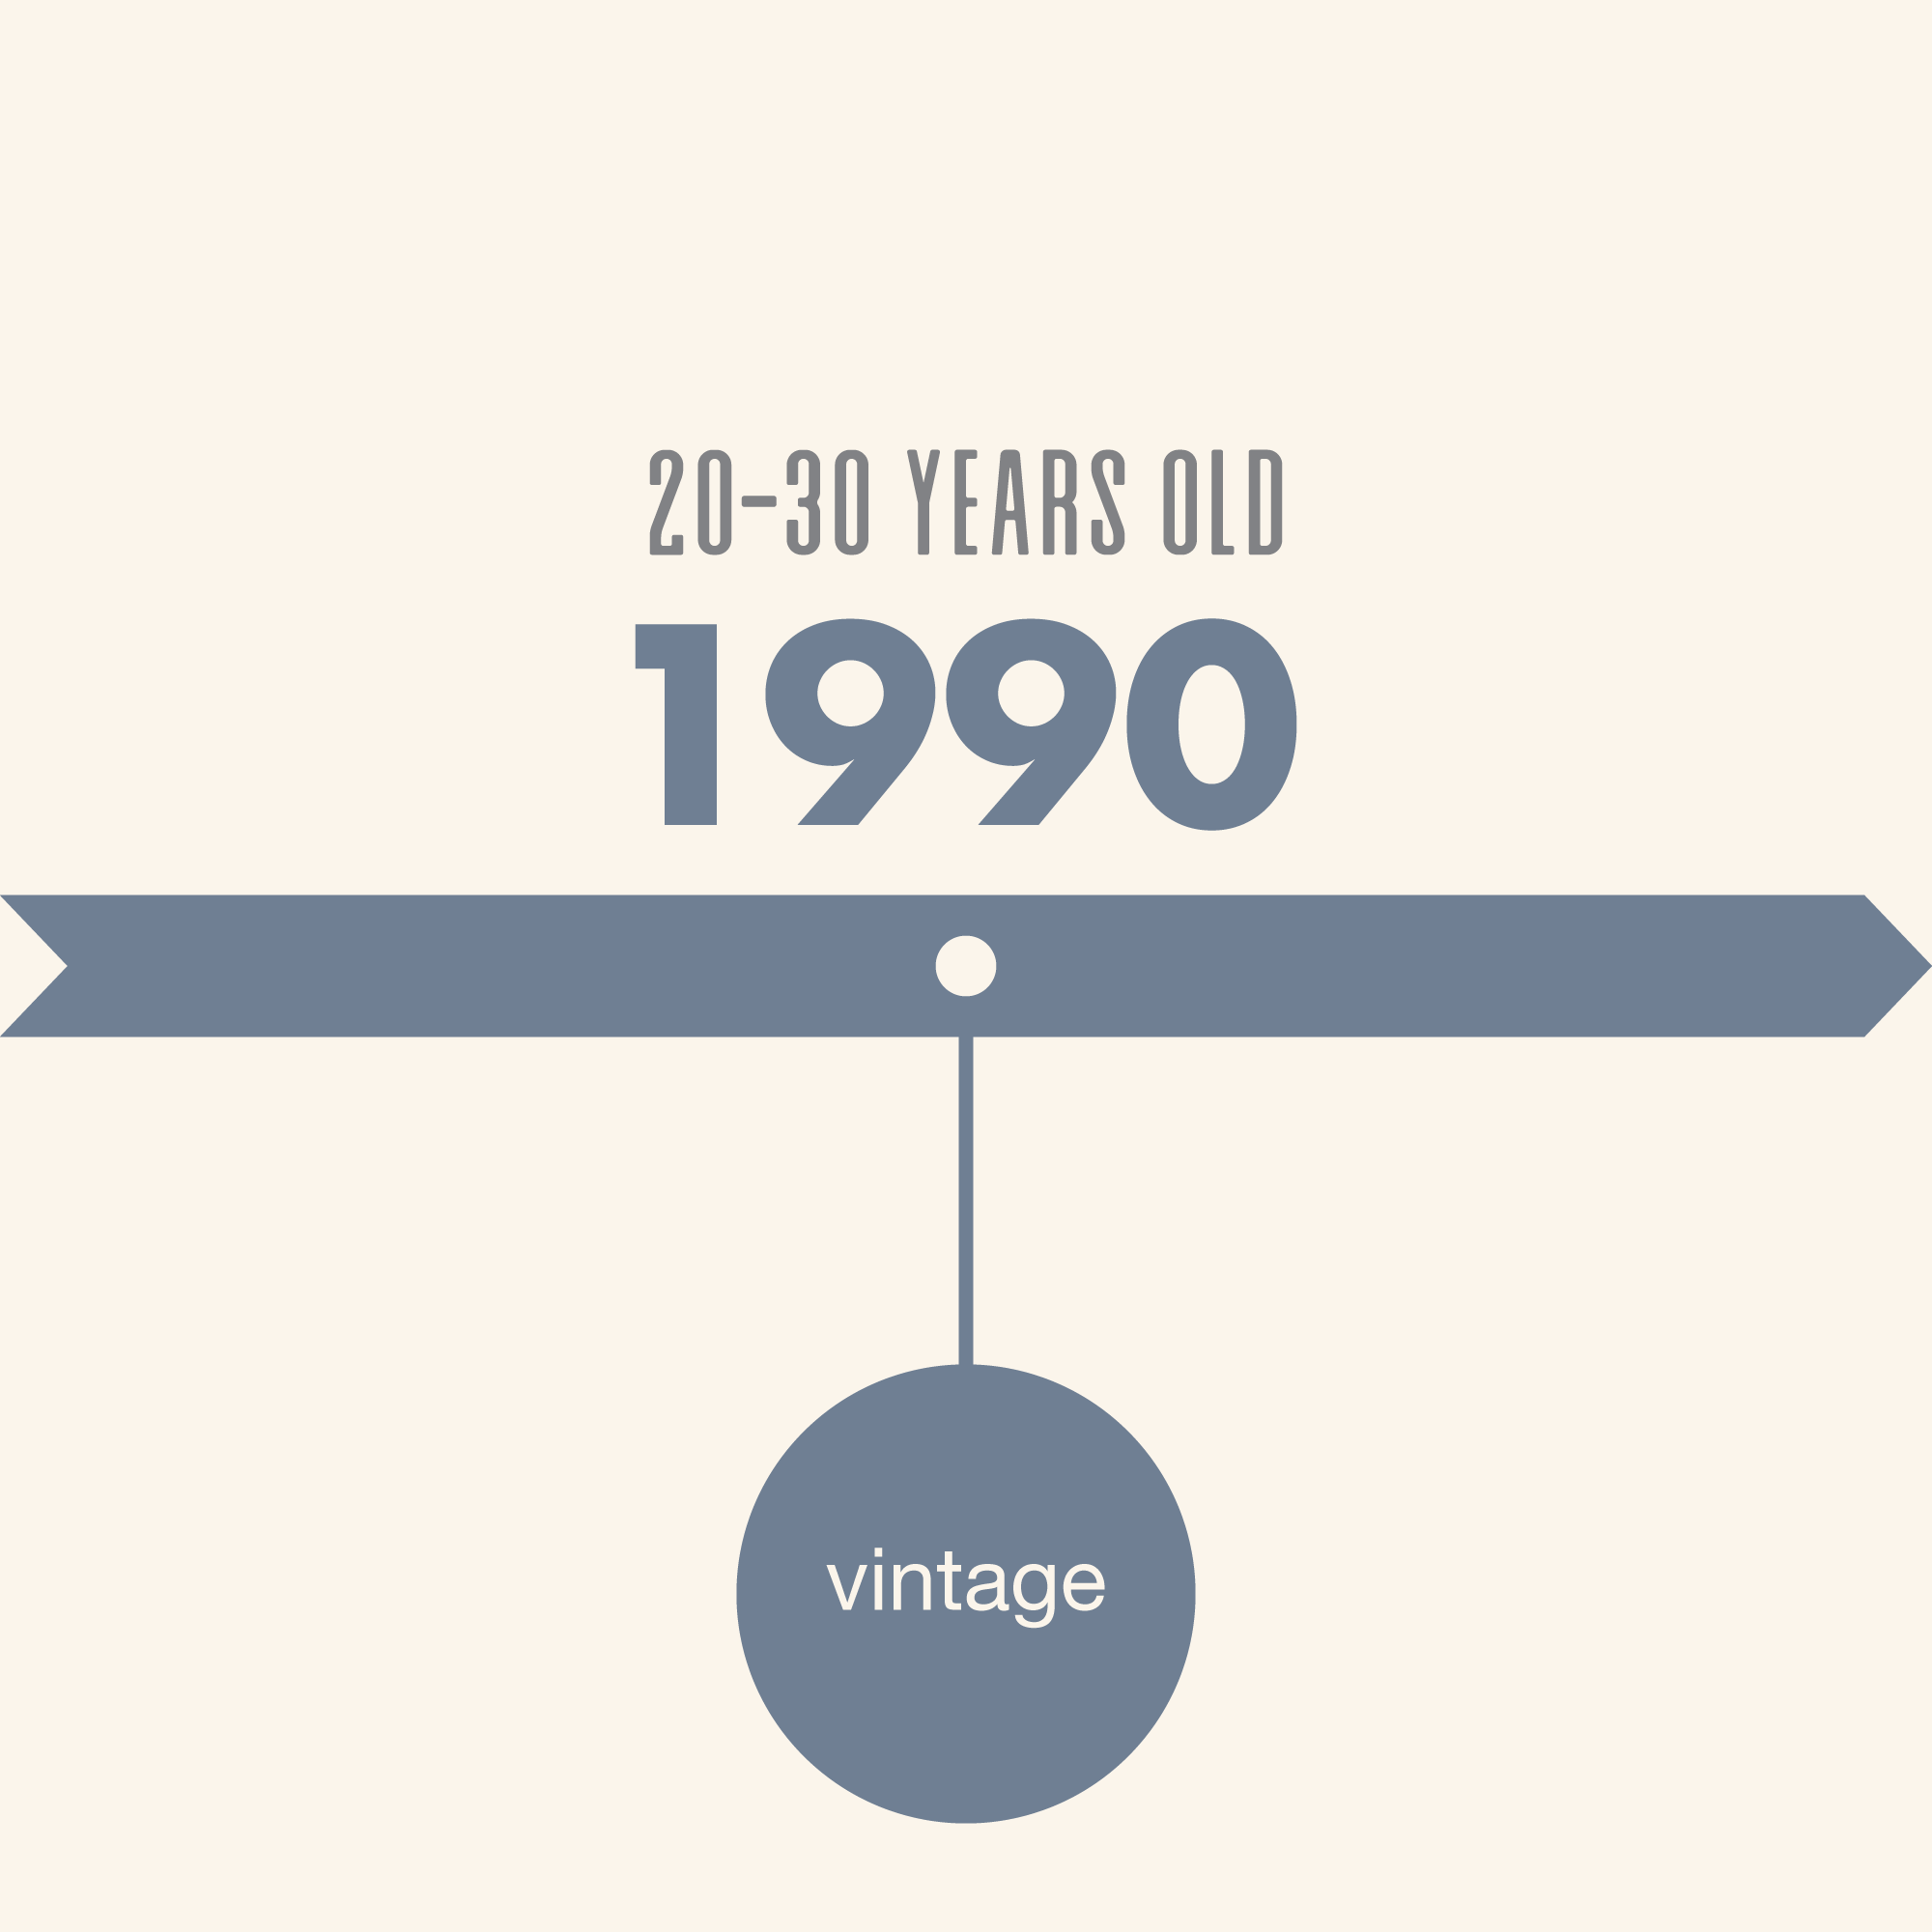 product-attribute-1990